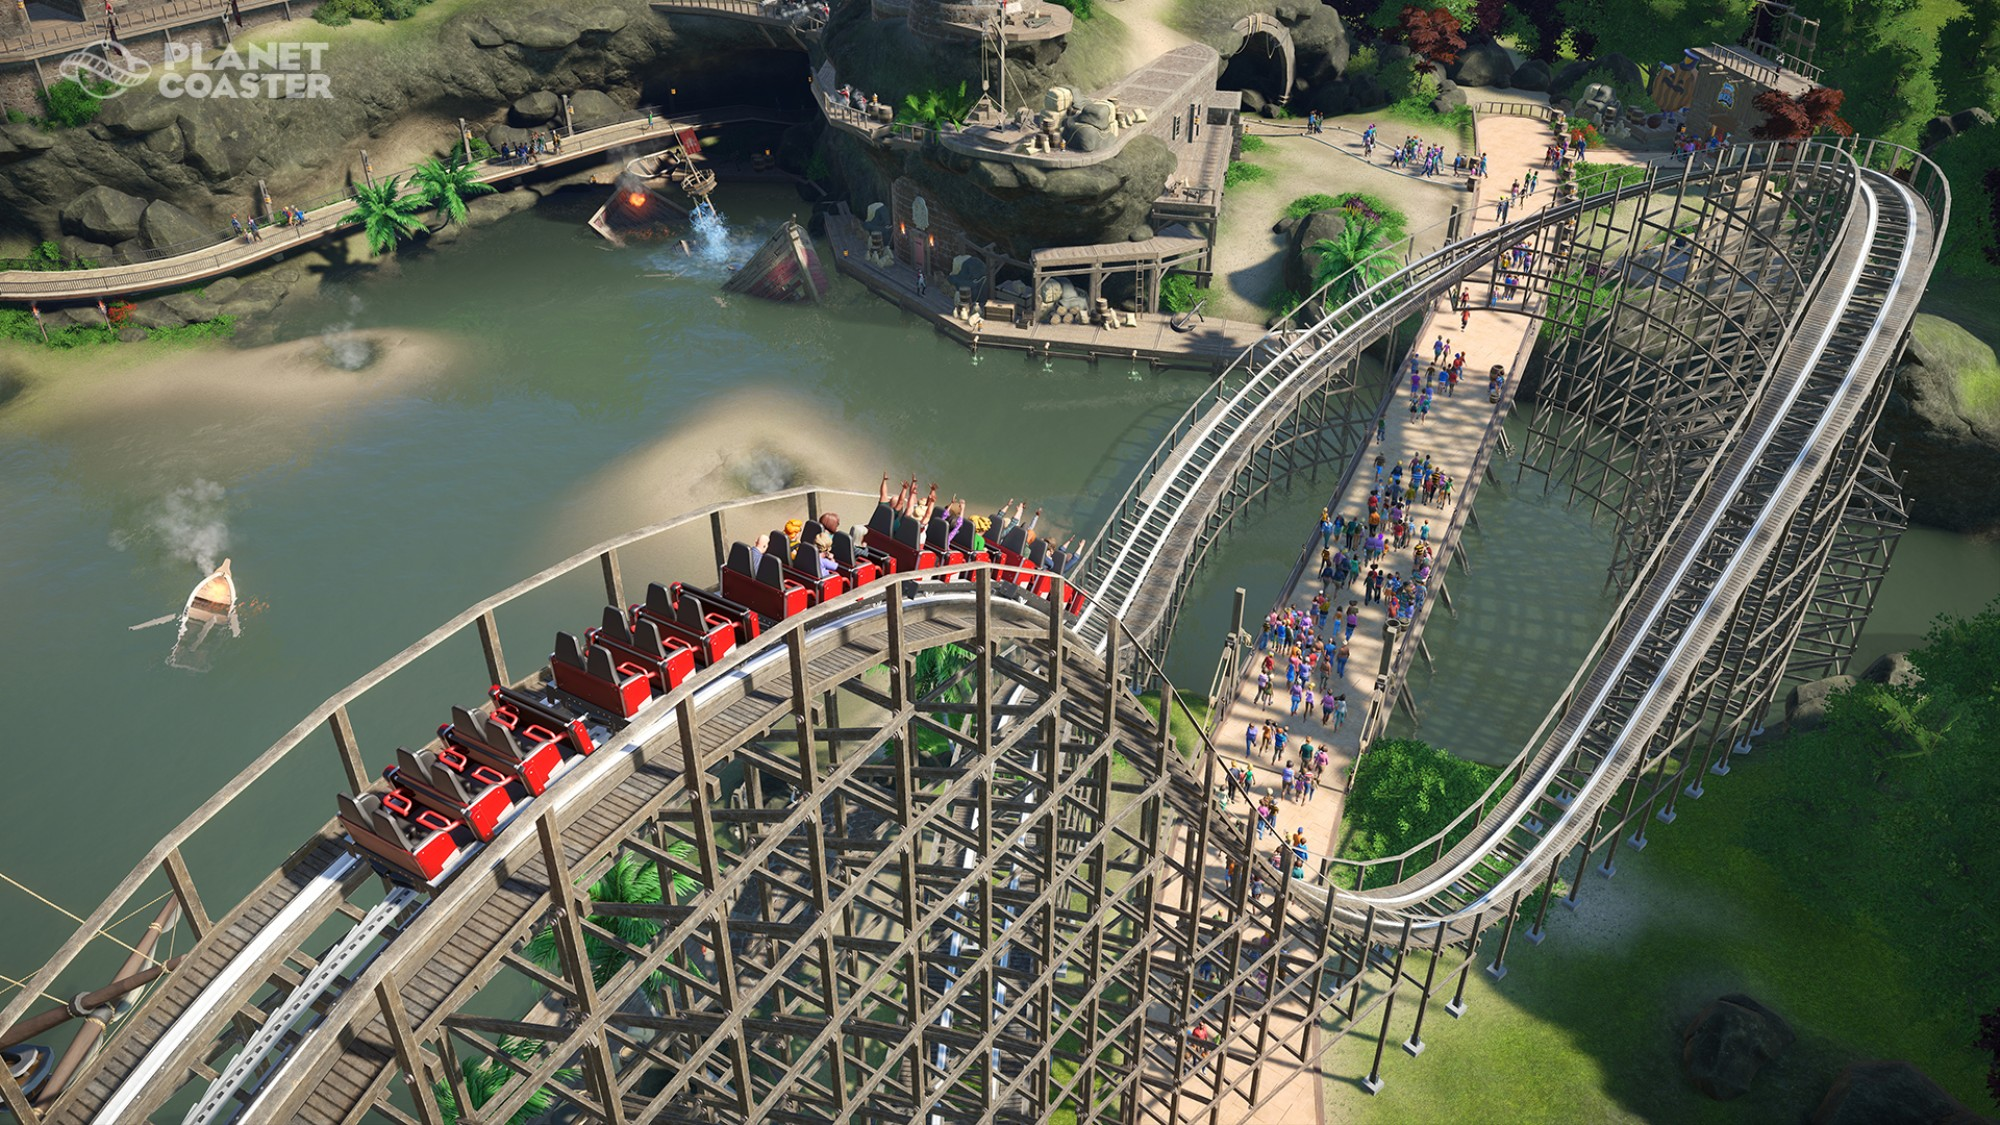 This Architect Has Recreated 30 Real World Coasters in 'Planet